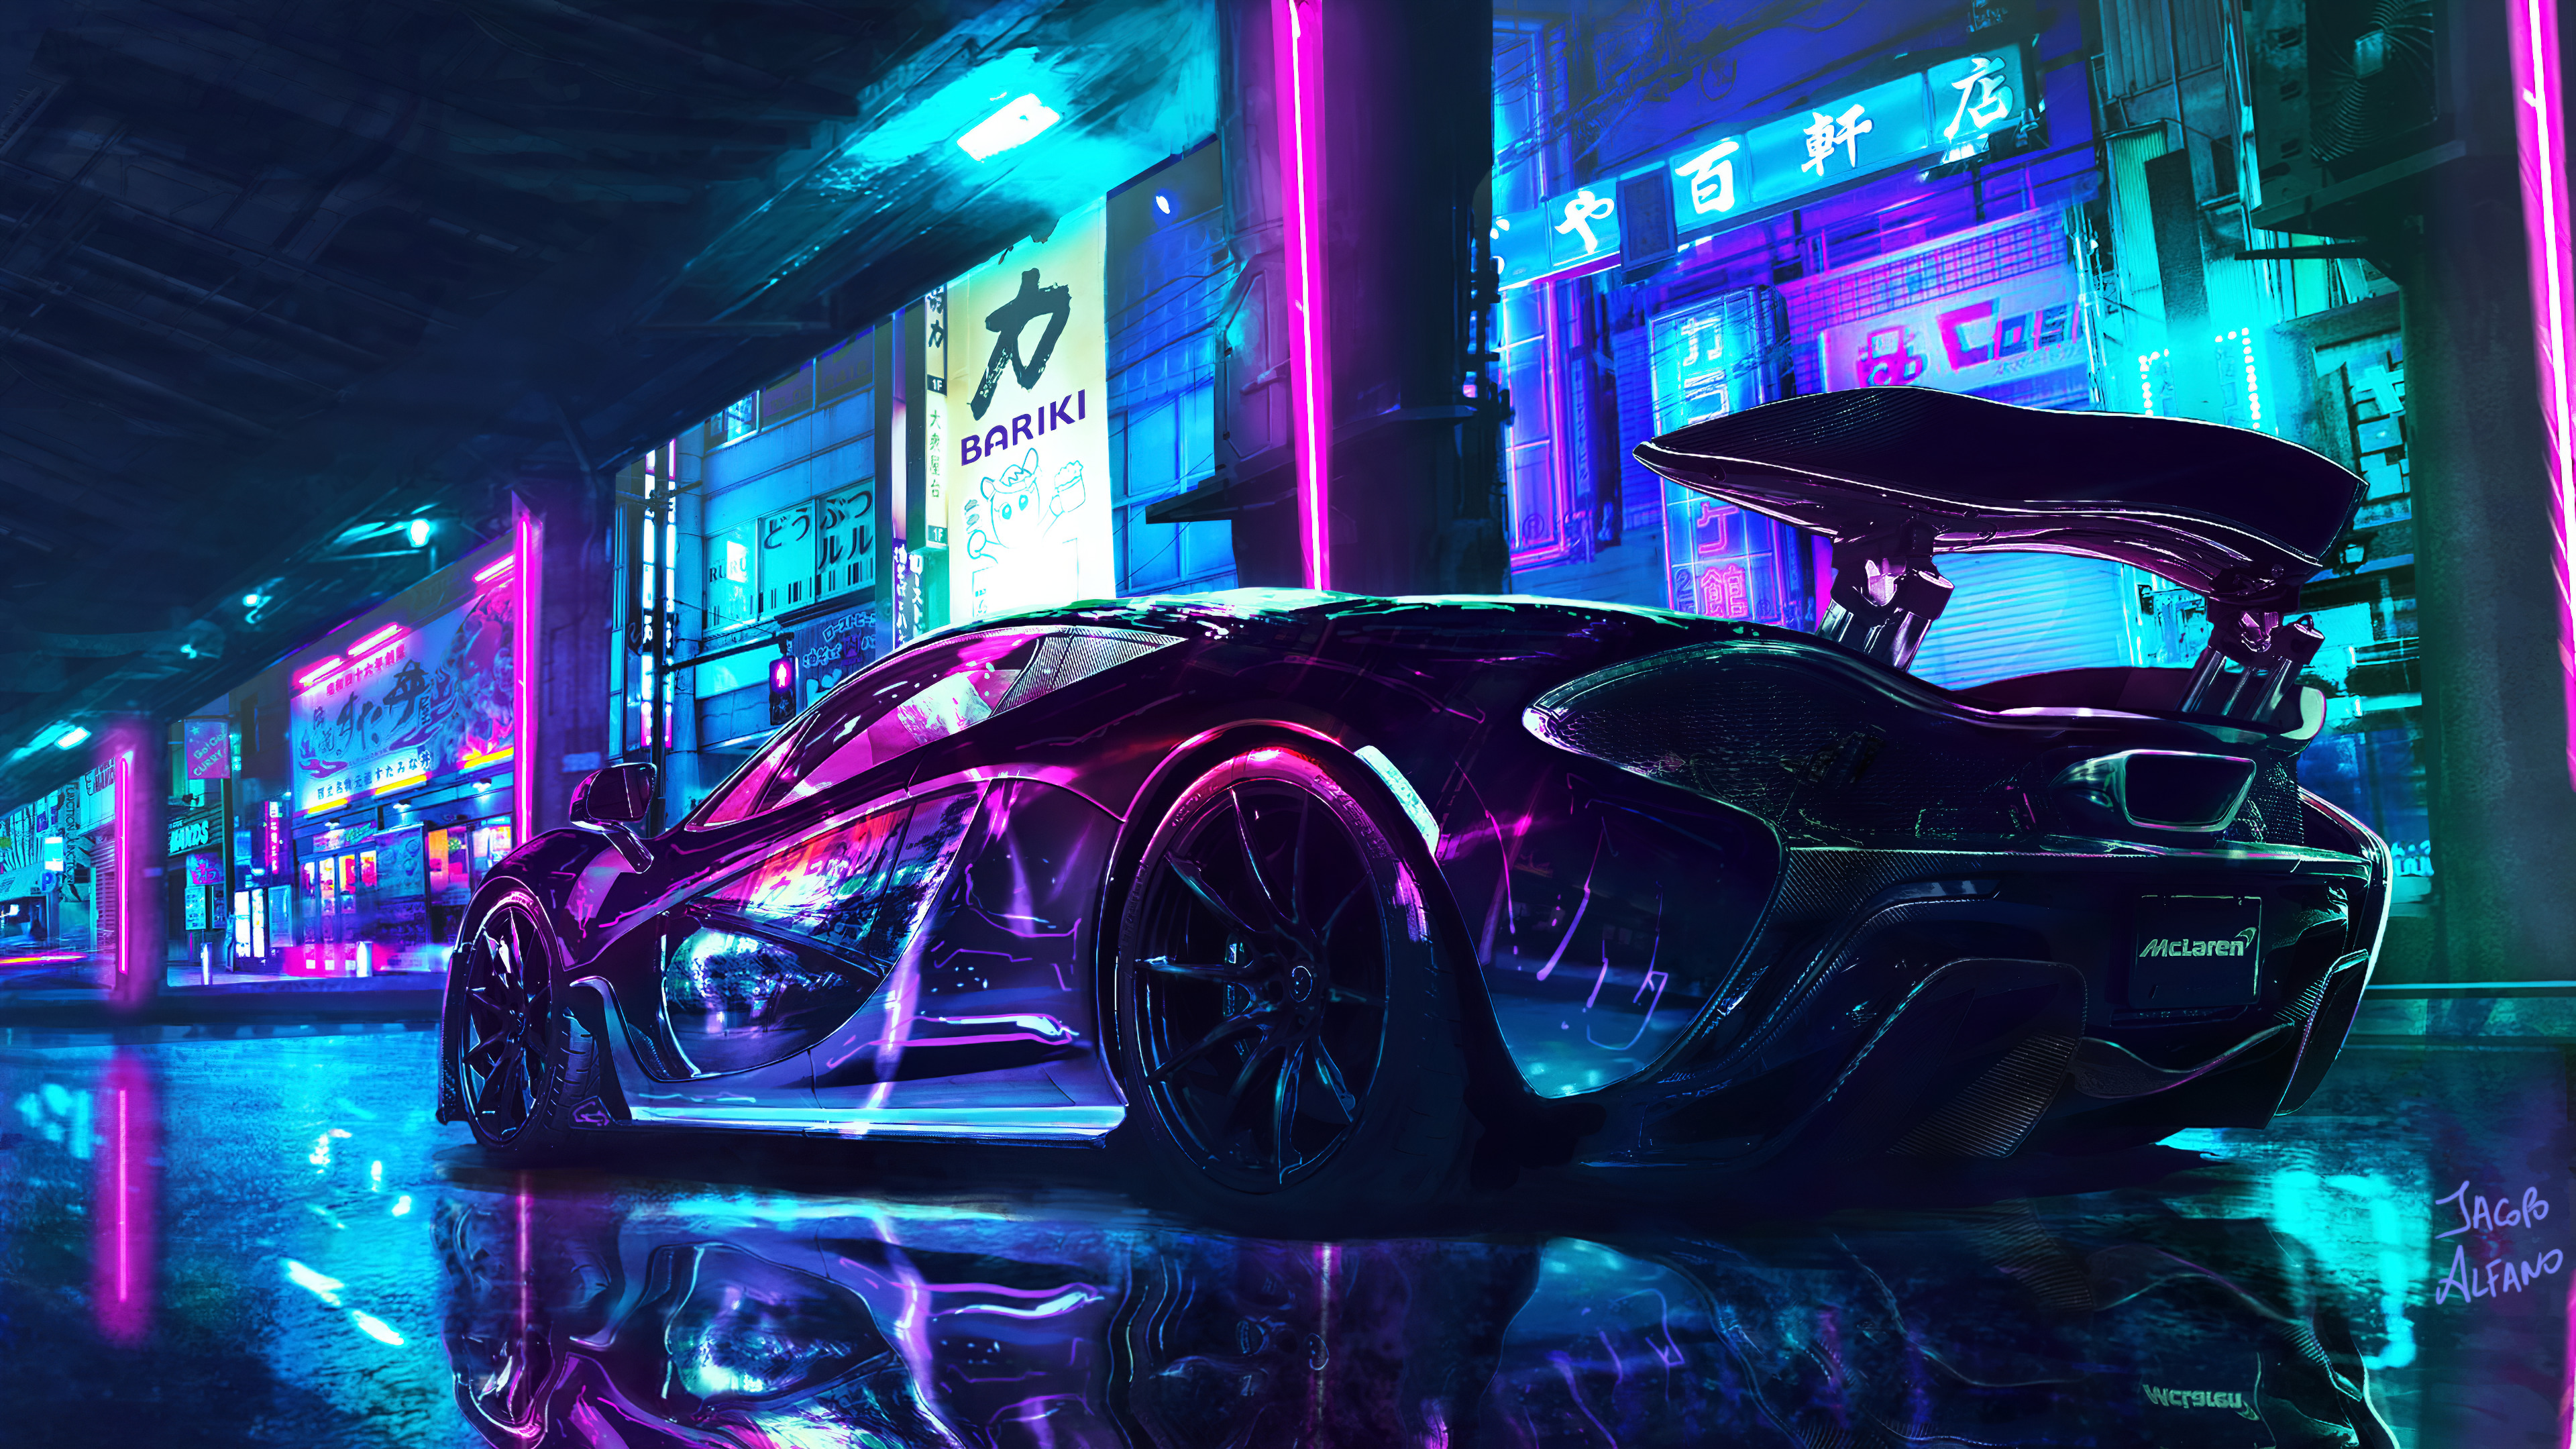 Mclaren Cyberpunk Chrome Color 4k Hd Cars 4k Wallpapers Images Backgrounds Photos And Pictures